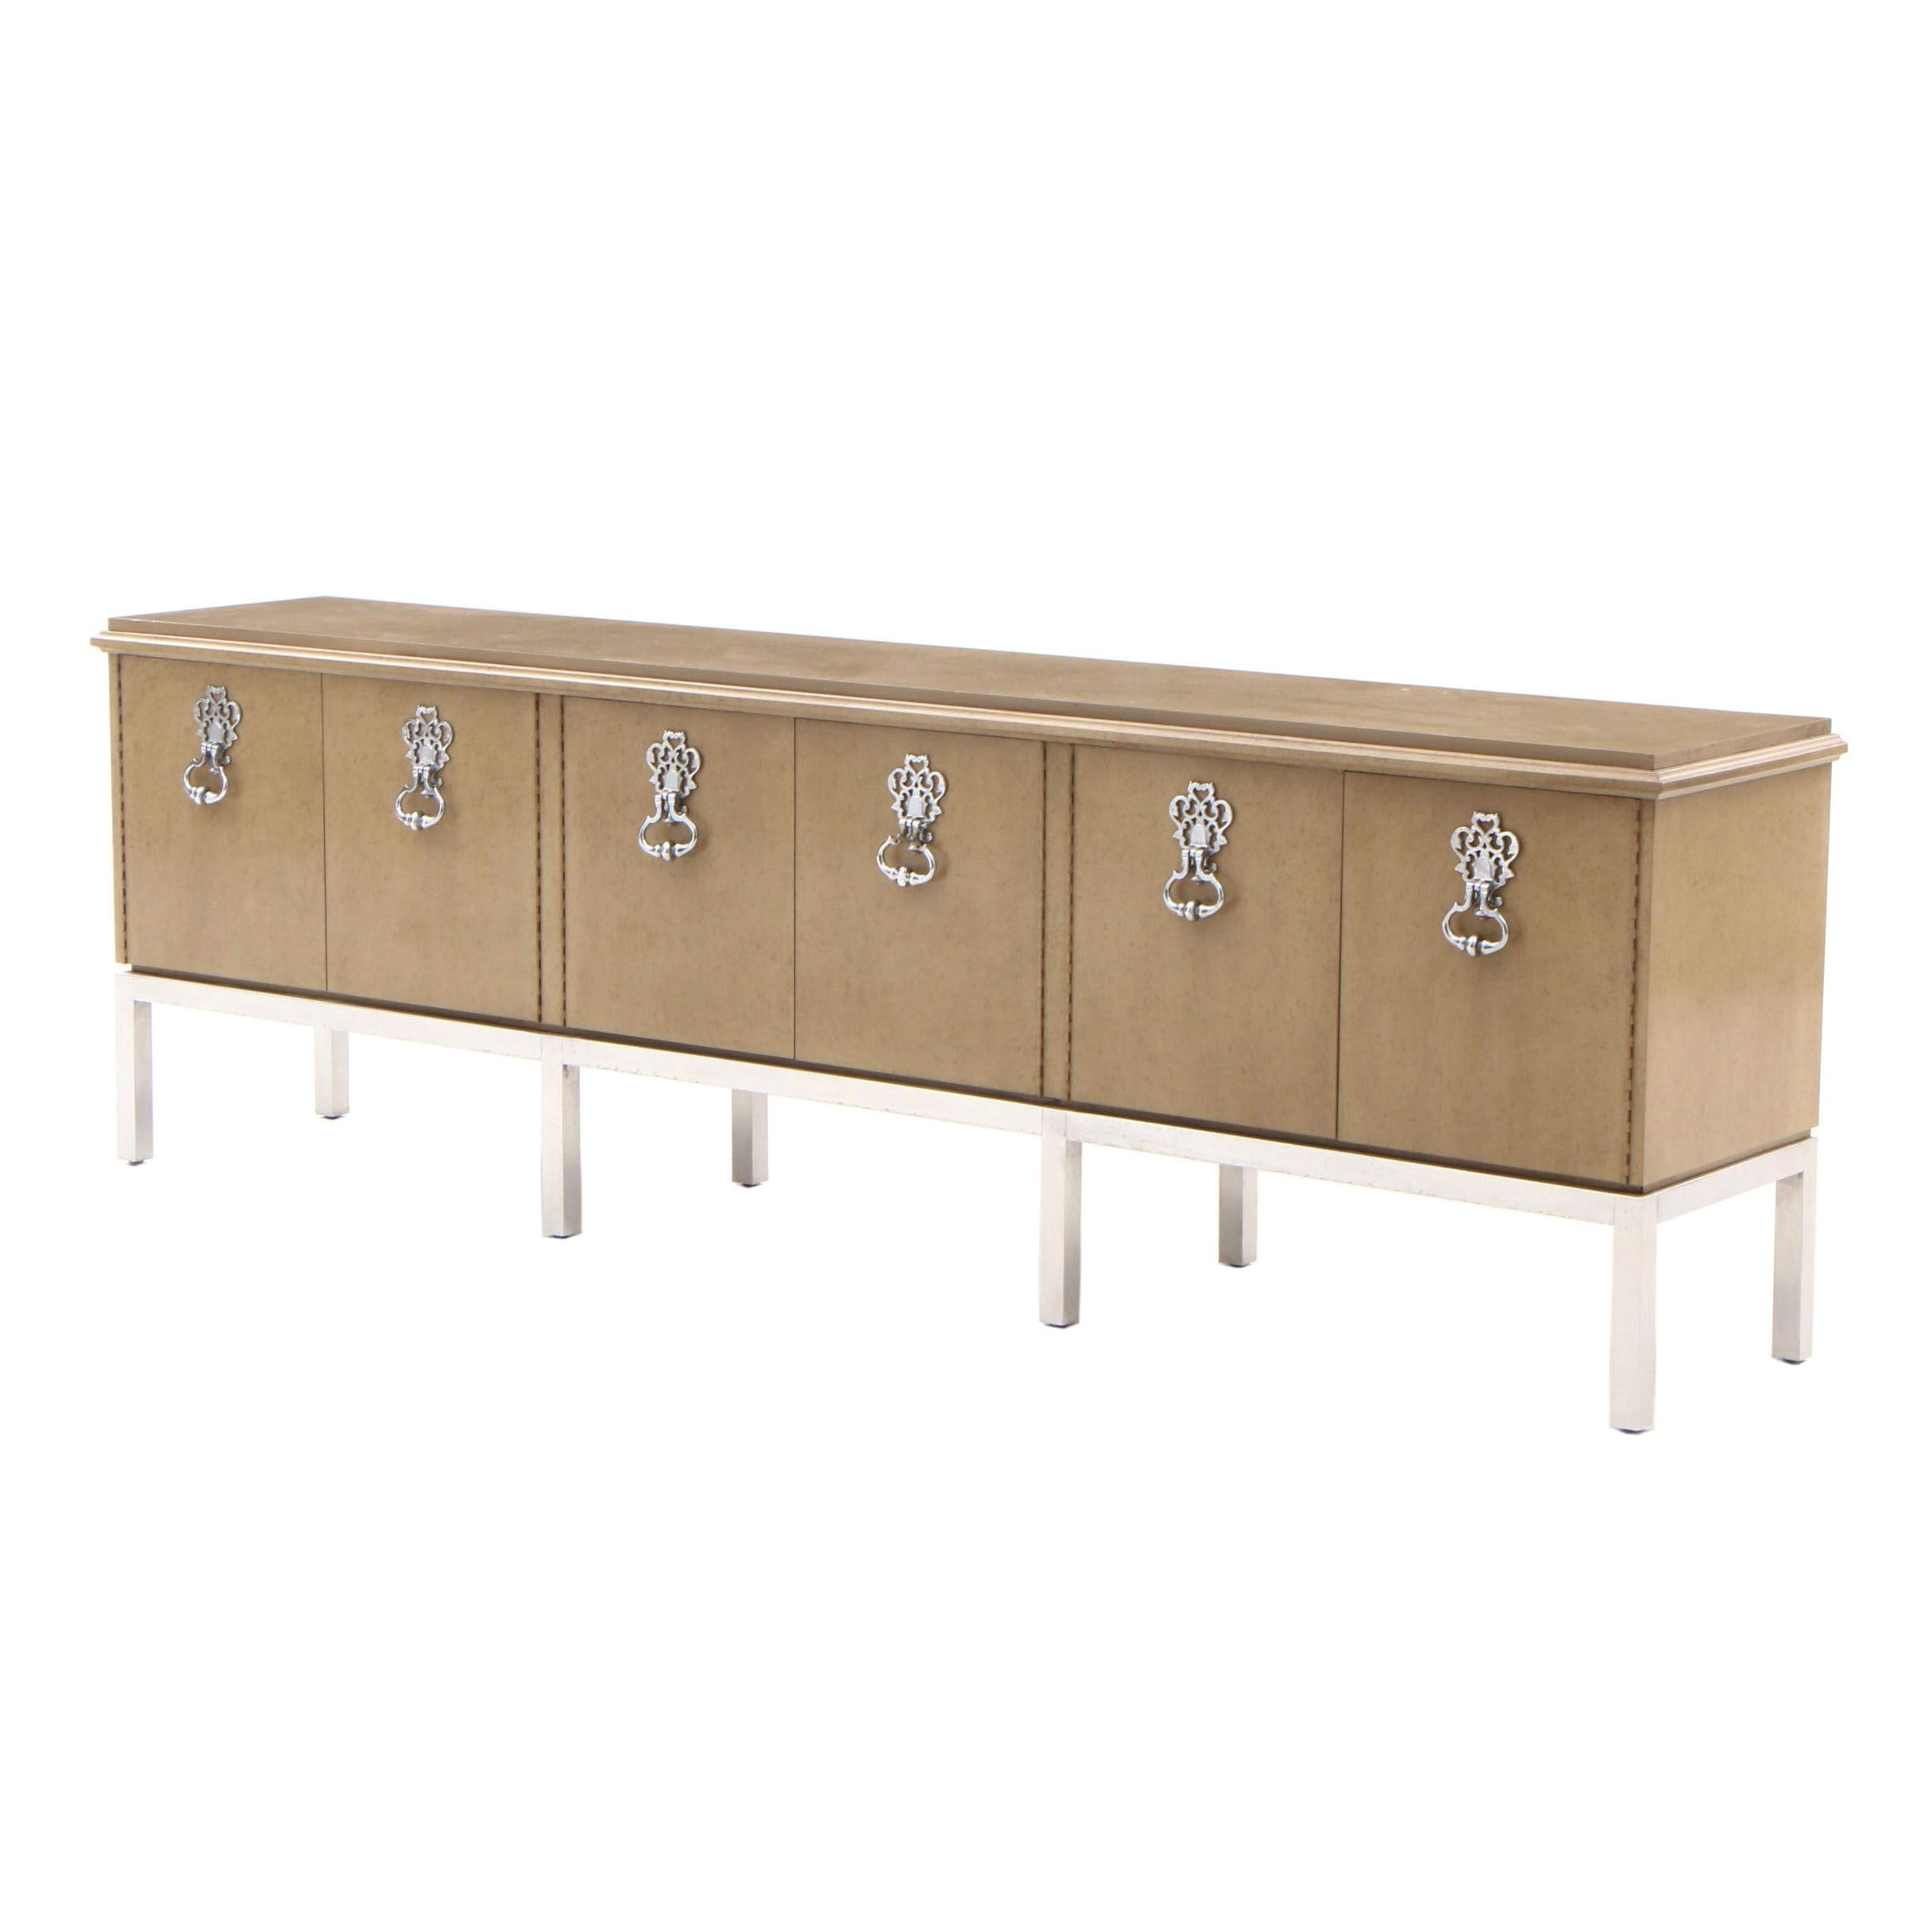 Contemporary Maple Credenza with Faux Burl Finish